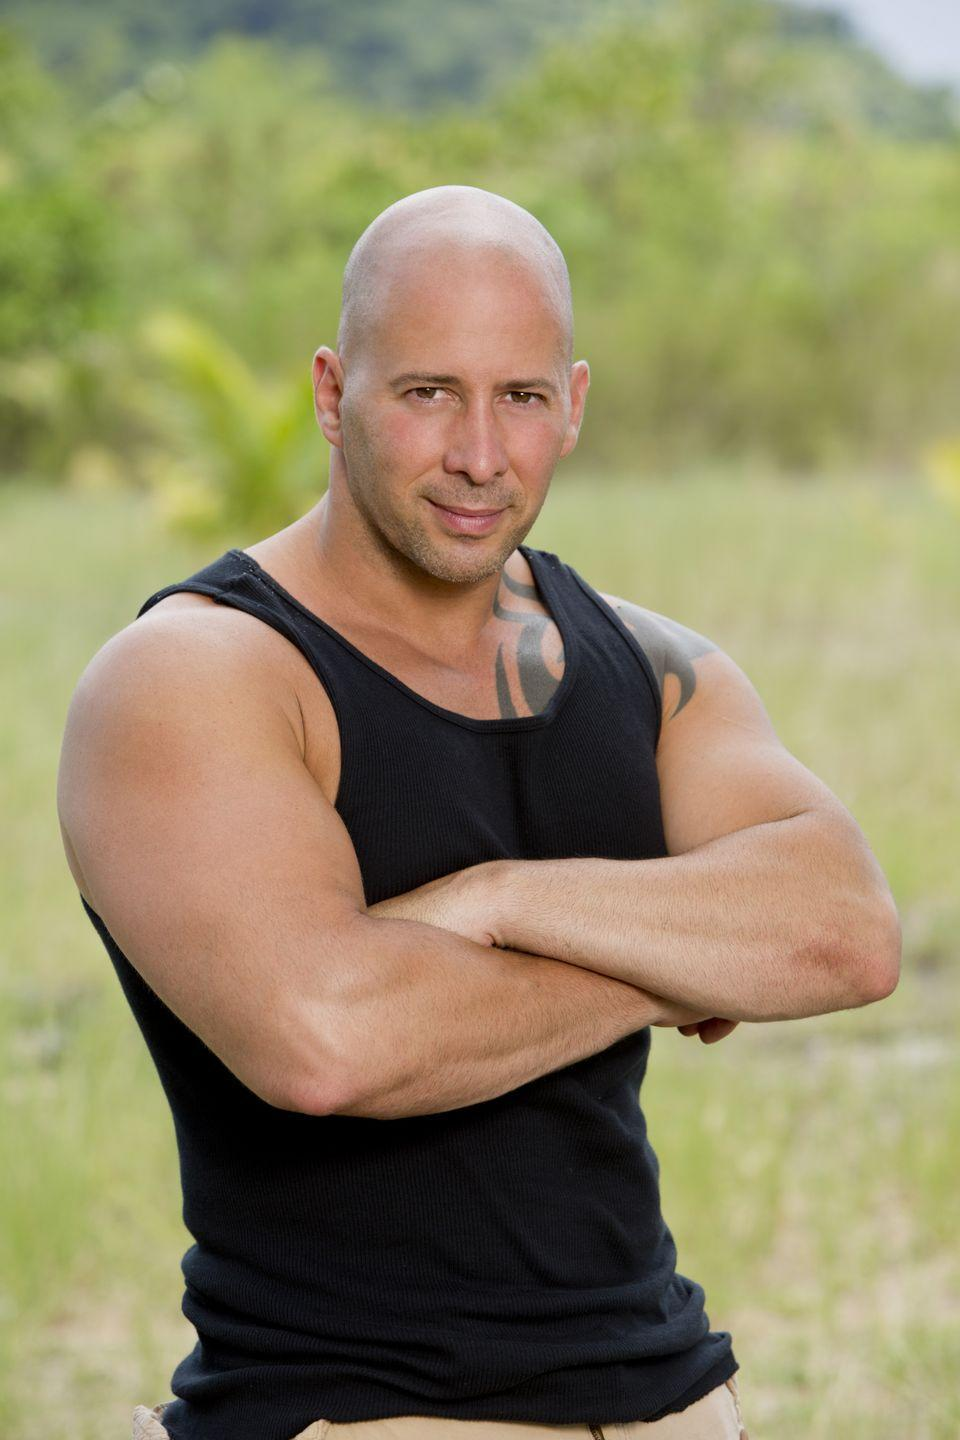 "<p><a href=""https://survivor.fandom.com/wiki/Tony_Vlachos"" rel=""nofollow noopener"" target=""_blank"" data-ylk=""slk:Tony Vlachos"" class=""link rapid-noclick-resp"">Tony Vlachos</a> is the winner of <em>Survivor: Cagayan</em> and <em>Survivor: Winners at War</em>, making him the second person (and first man) to win <em>Survivor</em> twice. He also competed on <em>Survivor: Game Changers</em>. In an article for <a href=""https://parade.com/377297/joshwigler/jeff-probst-names-his-top-ten-survivor-winners-of-all-time/#gallery_377297-4"" rel=""nofollow noopener"" target=""_blank"" data-ylk=""slk:Parade"" class=""link rapid-noclick-resp""><em>Parade</em></a>, <em>Survivor</em>'s host Jeff Probst said of Tony, ""I've never seen anyone play with that much energy and juggle that many balls at once, and pull it all off.""</p>"